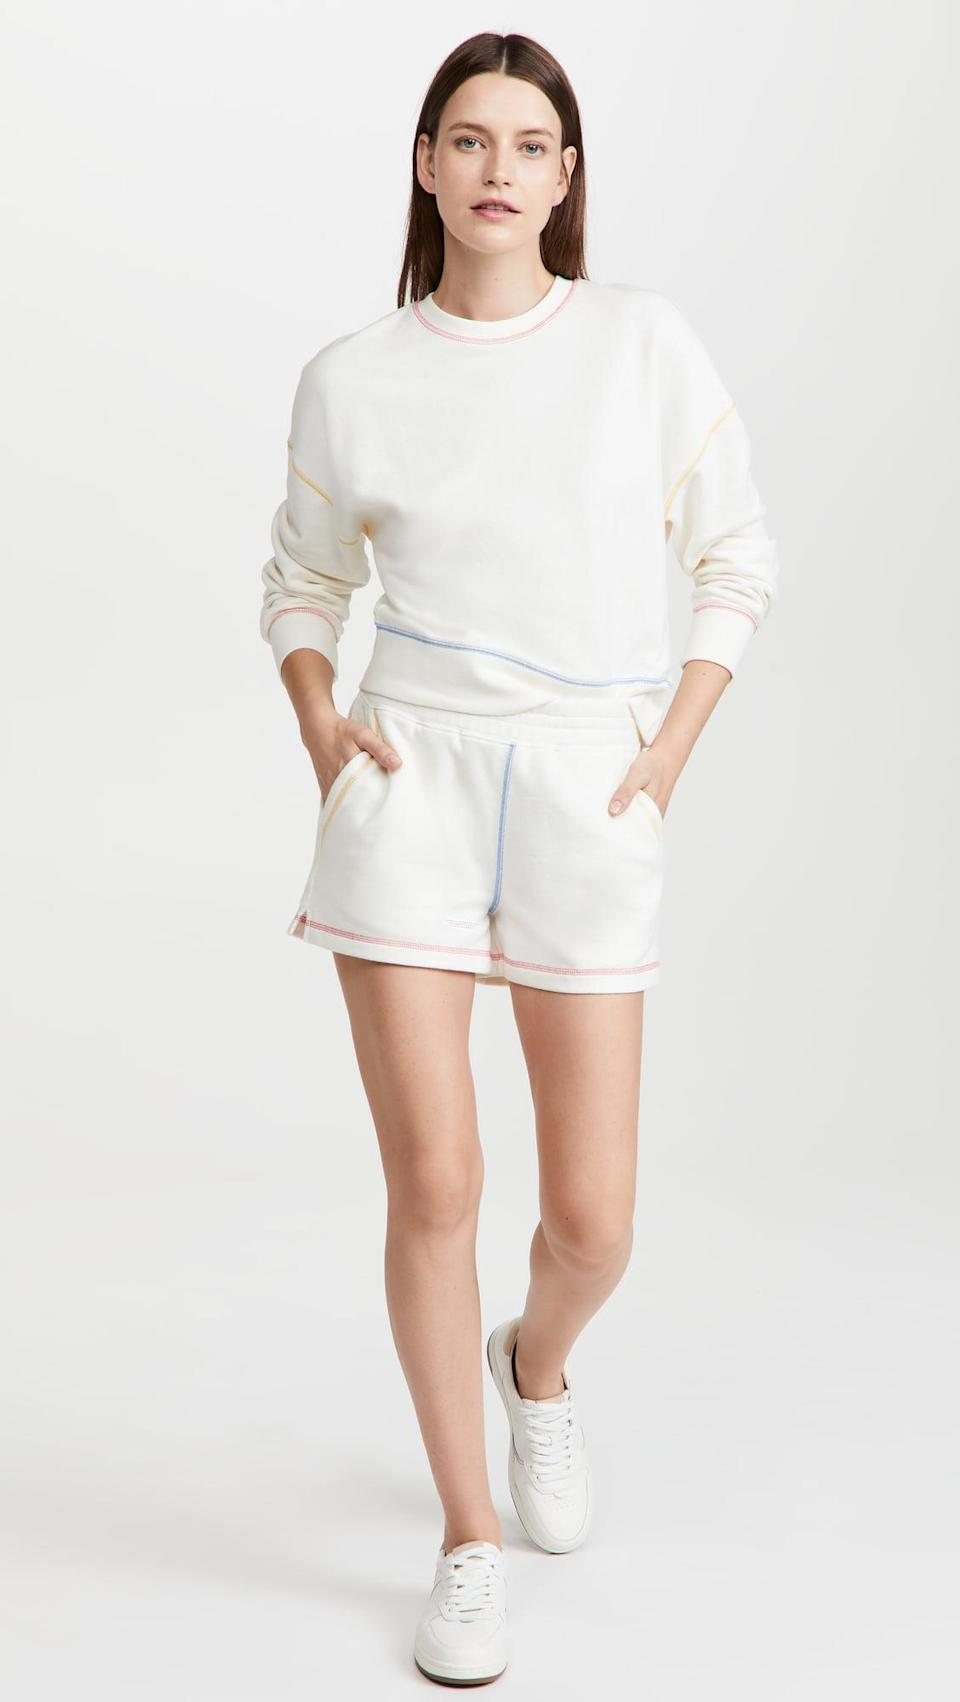 <p>Sweat sets are still very much a thing, and this <span>Rails Alice Sweatshirt</span> ($138) and <span>Jane Shorts</span> ($98) is adorable. I'm obsessed with the rainbow trim.</p>